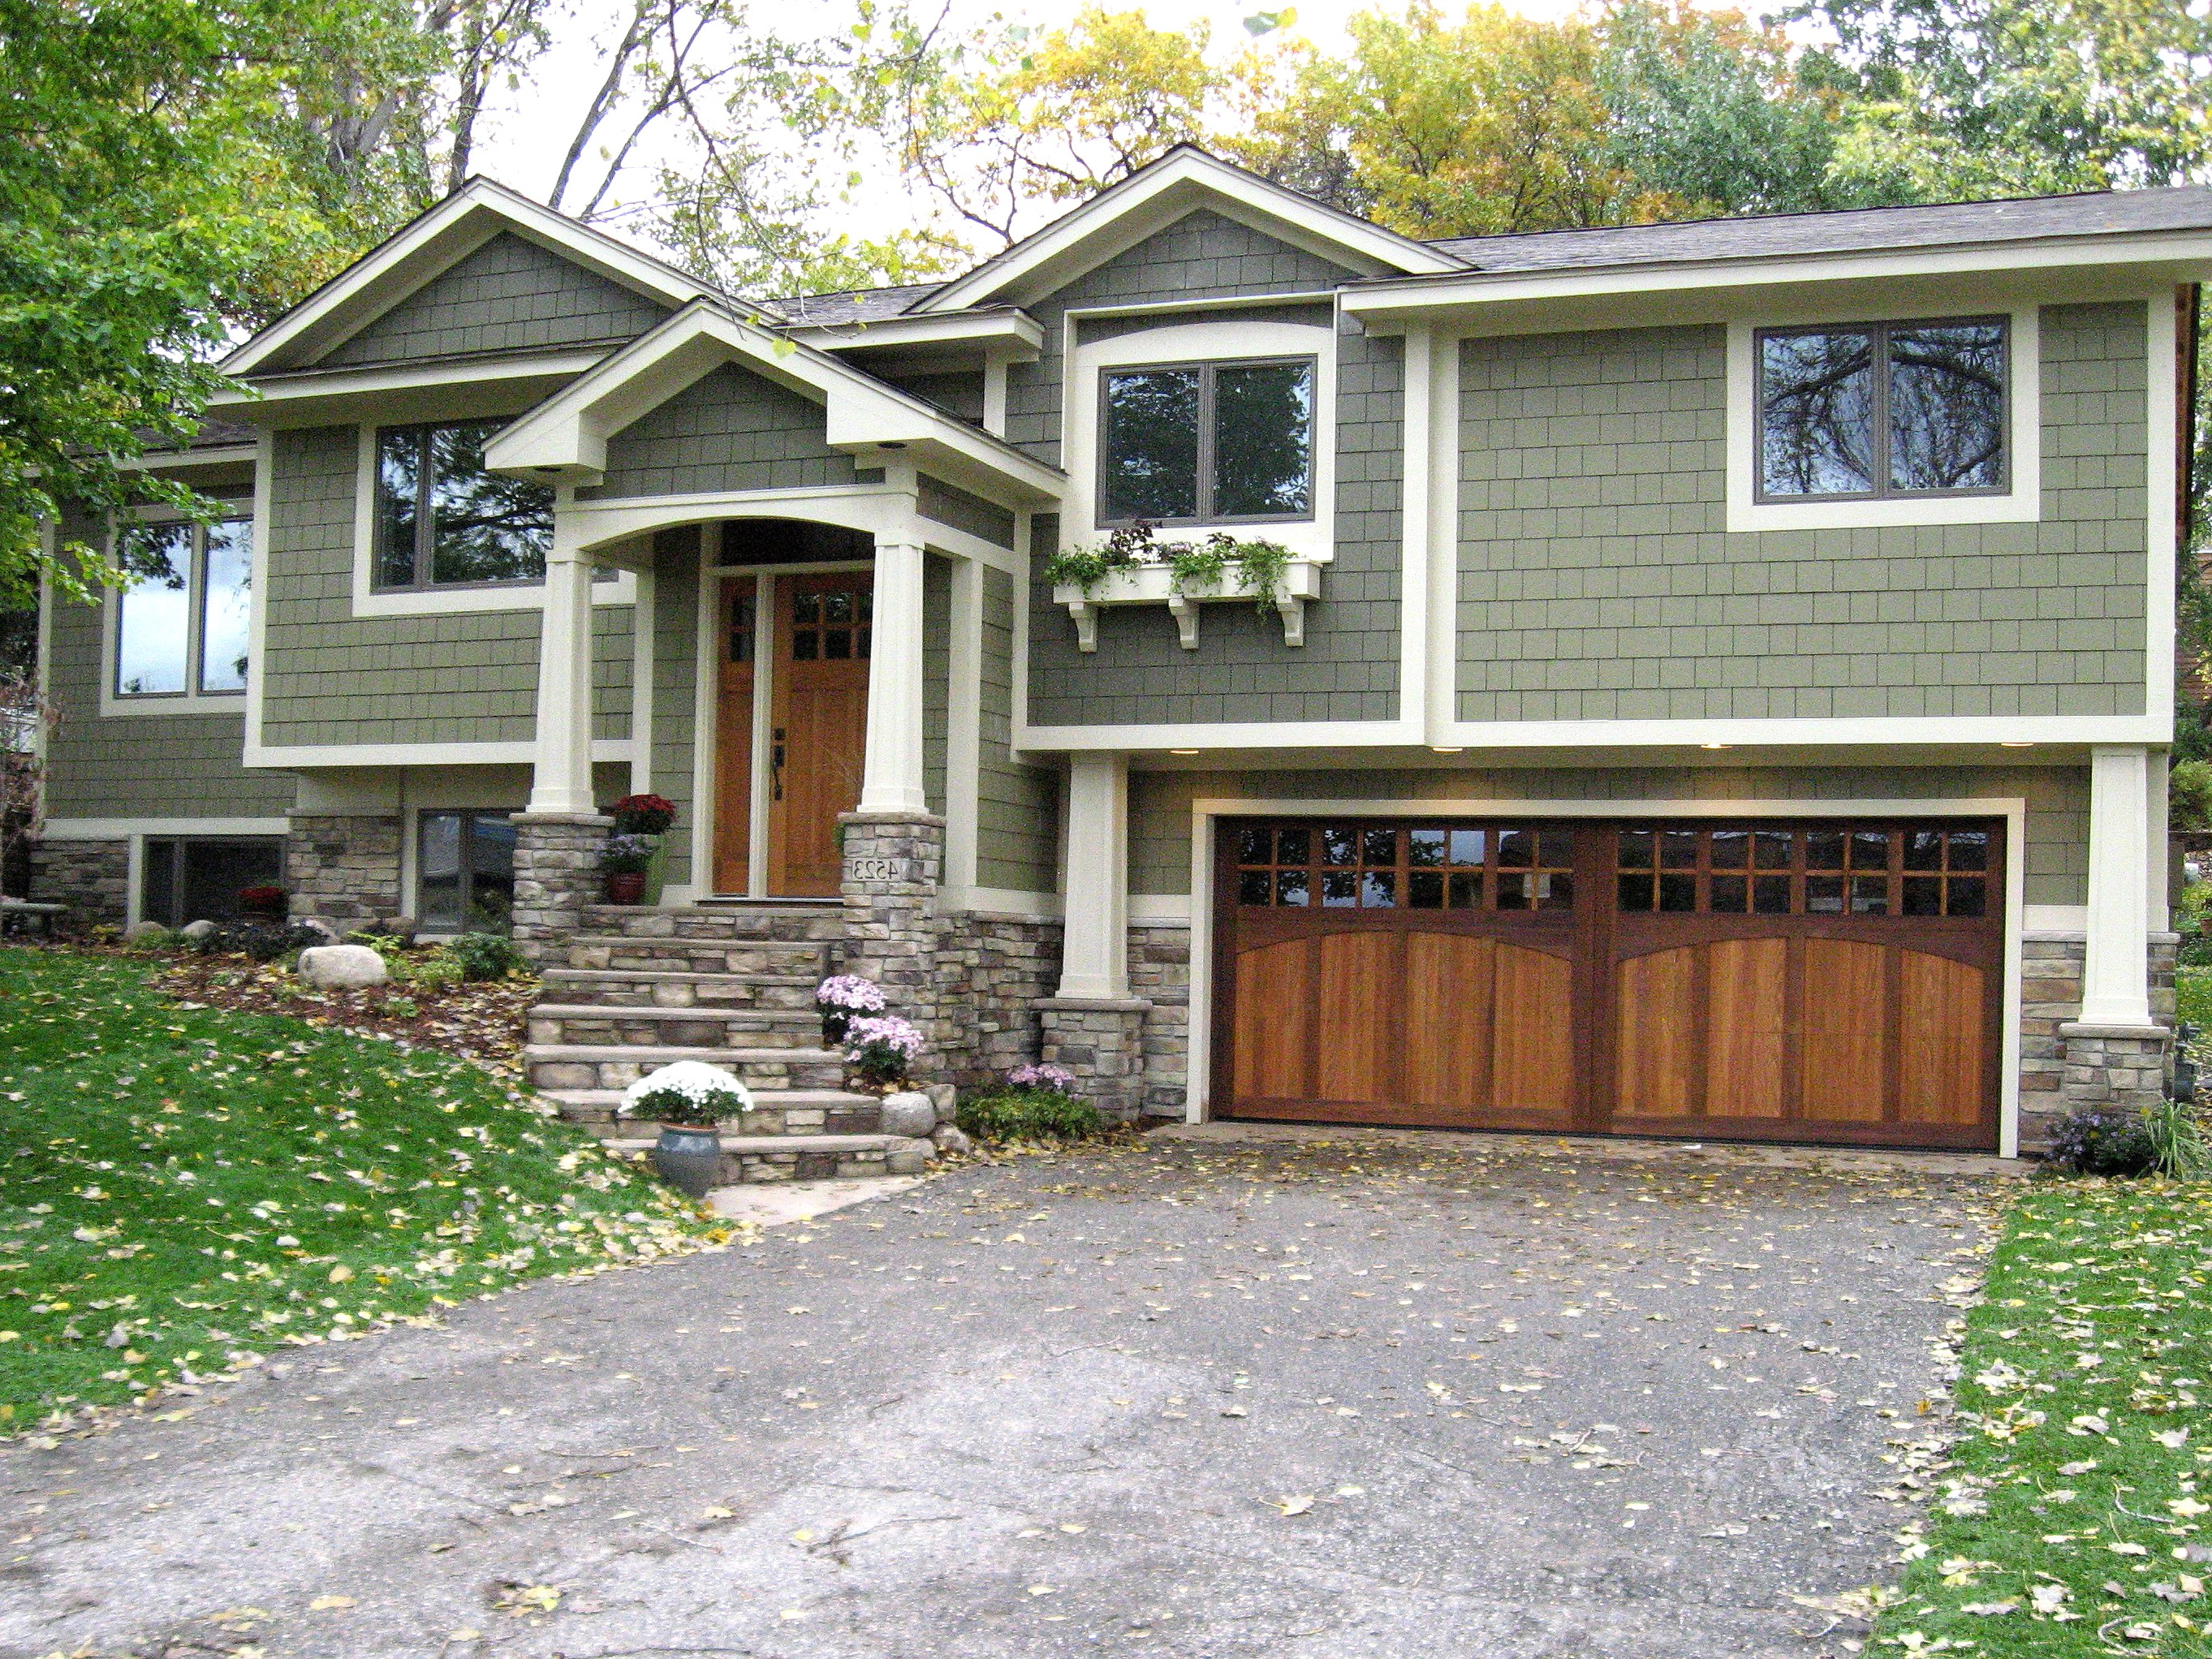 Le Meilleur Tips Choosing Garage Doors For Your New House 16774 Ce Mois Ci